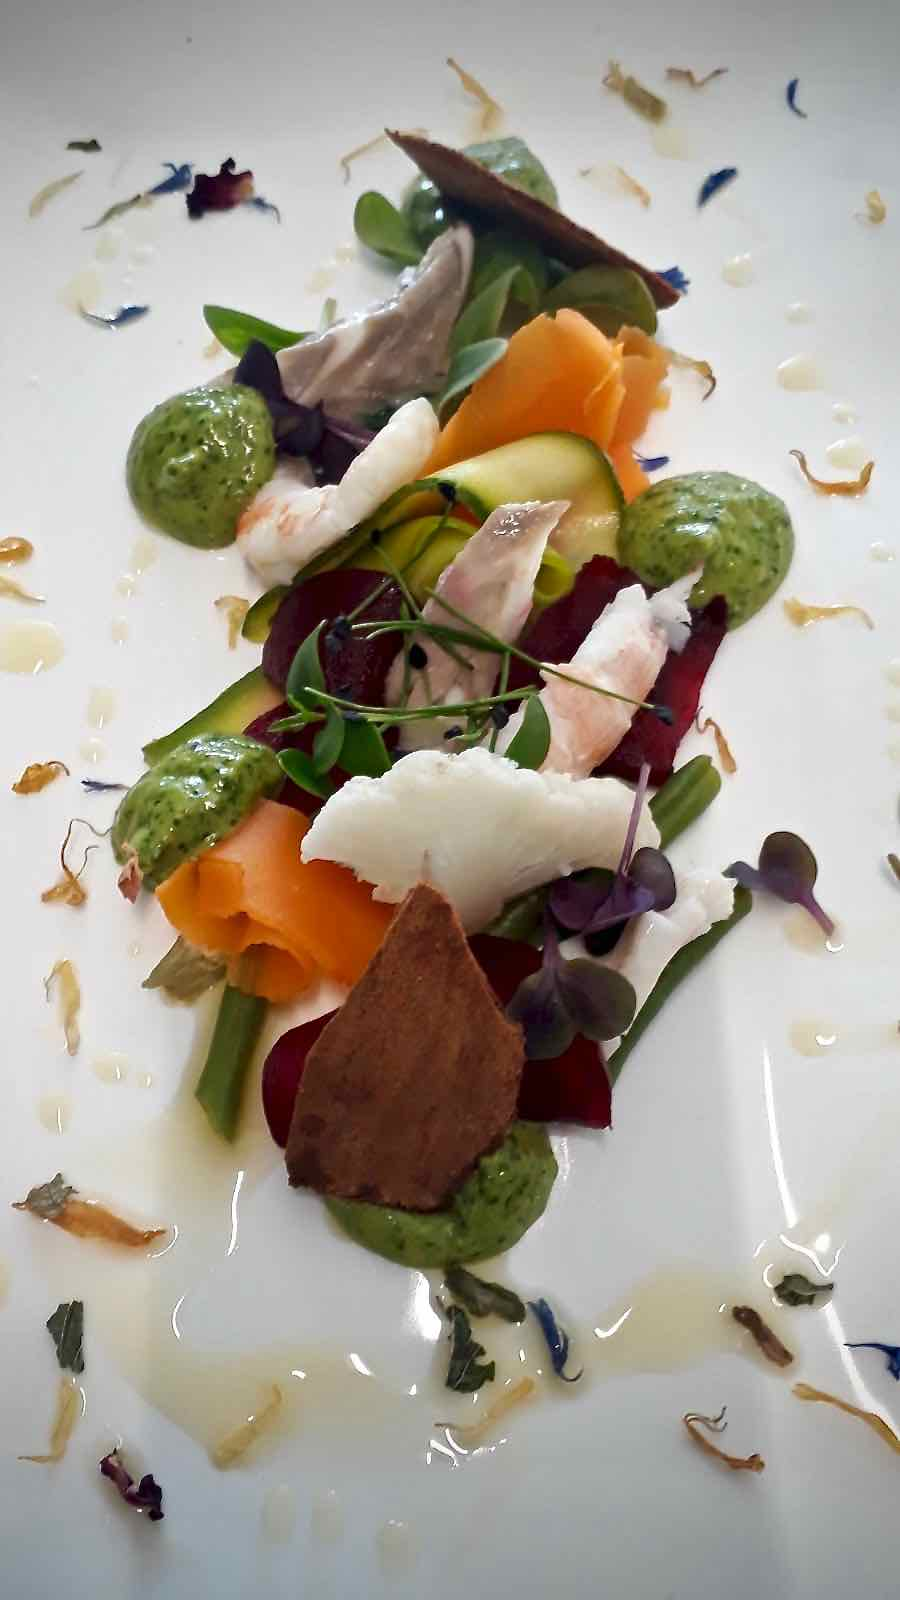 Food and drink - Cappon magro profumo di mare - 3